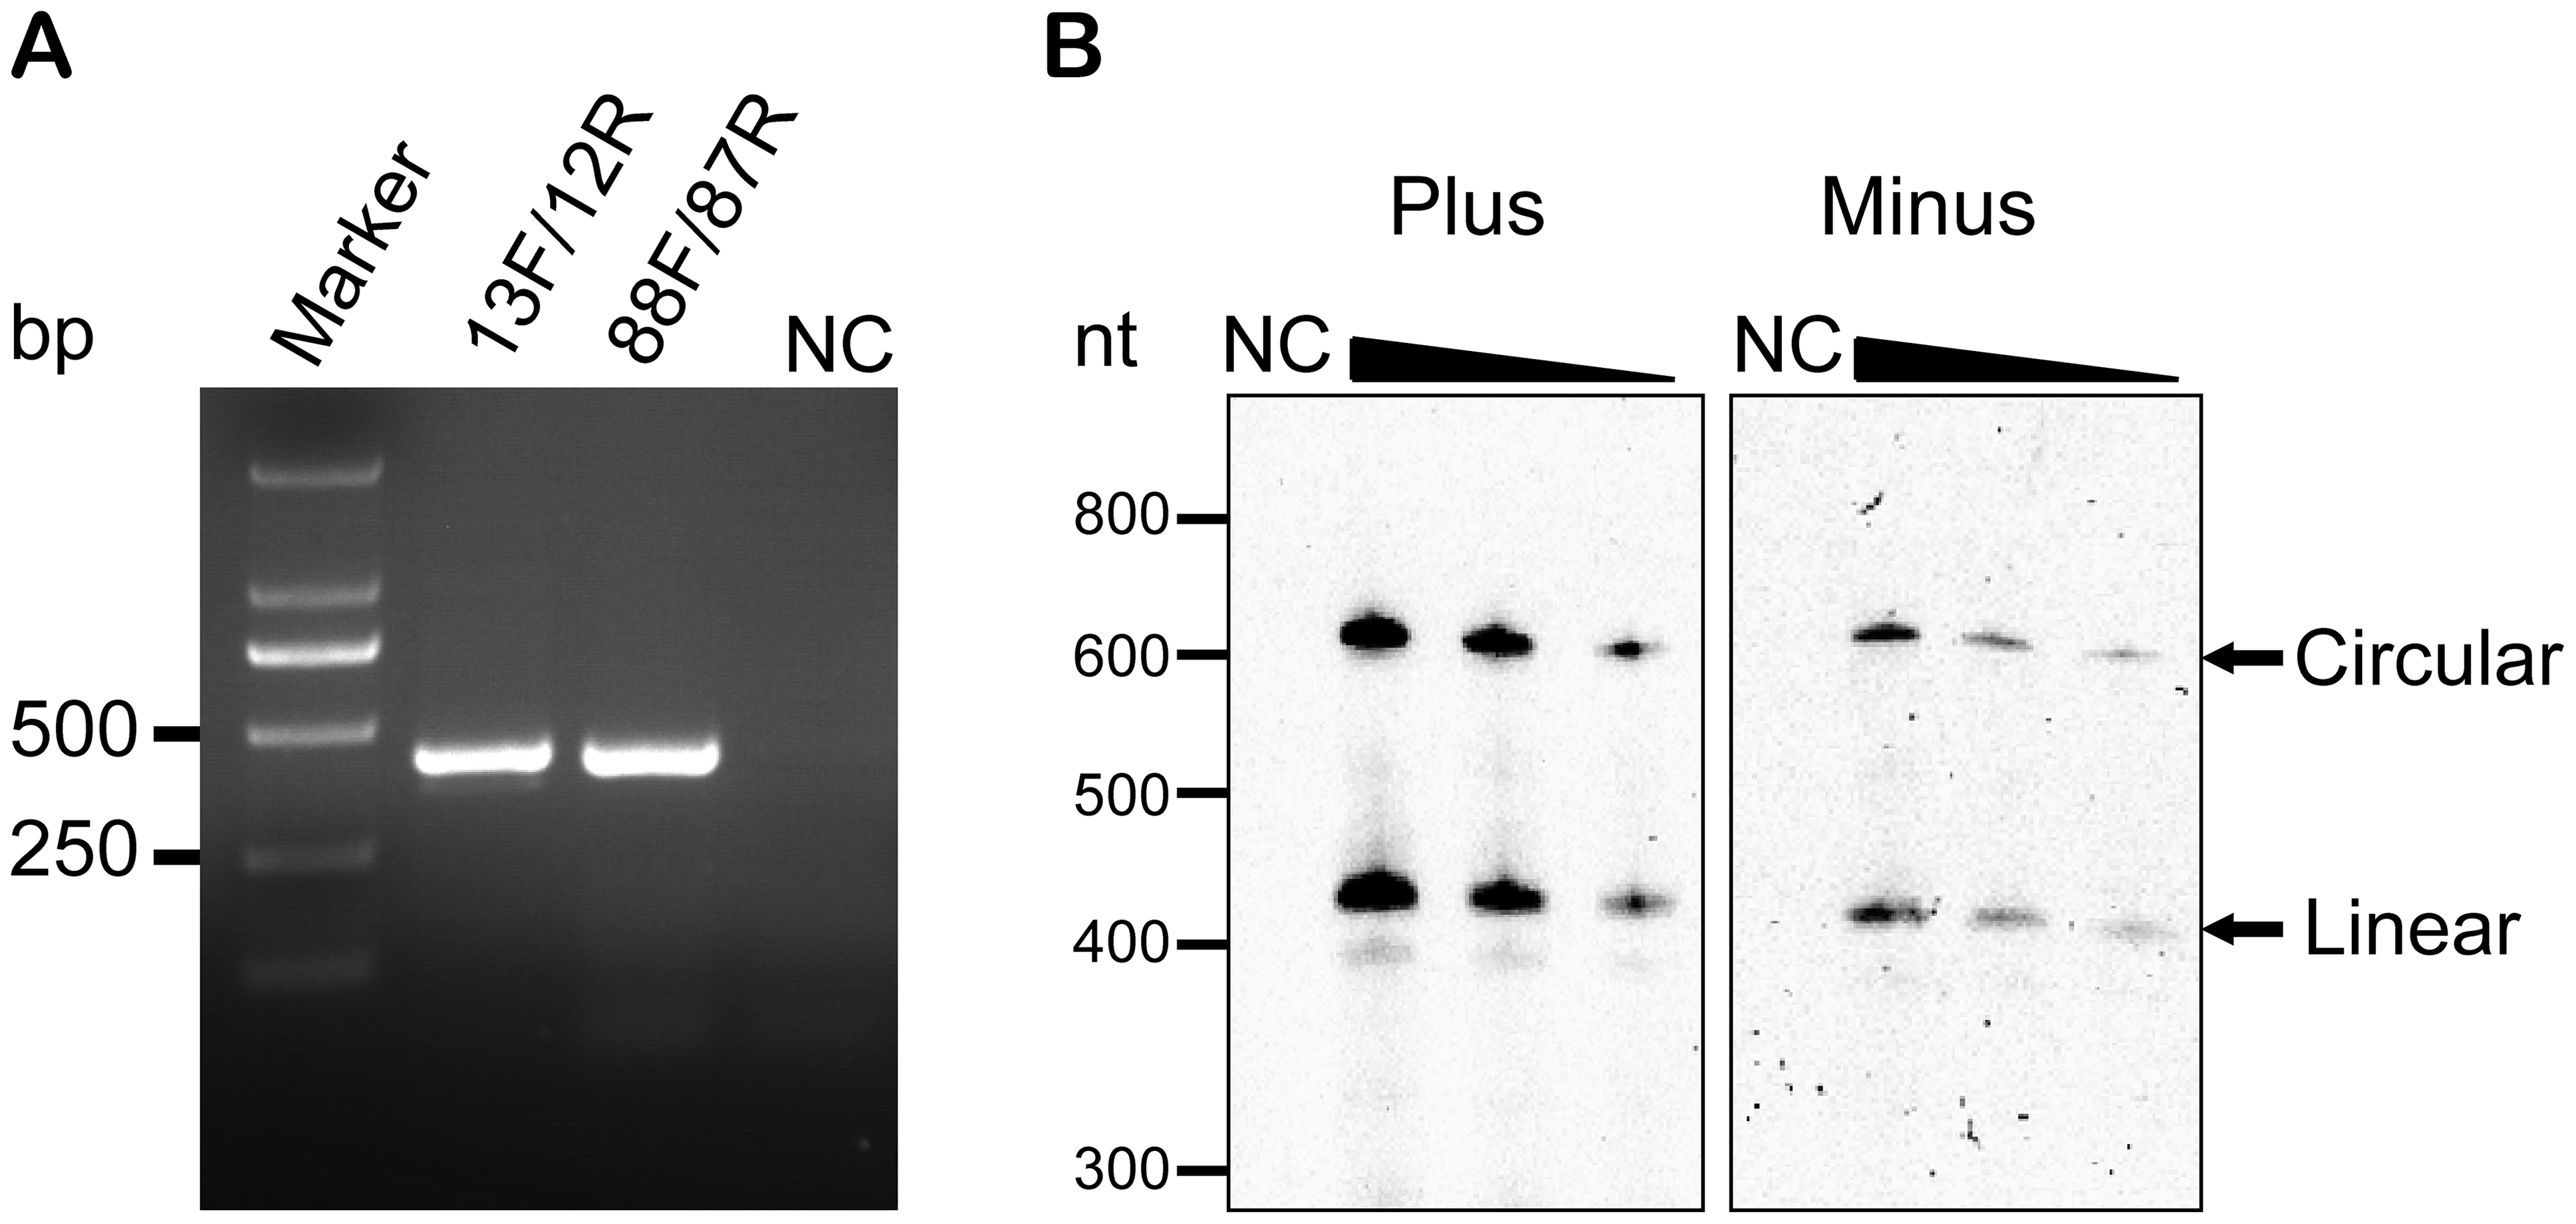 Verification of the circularity of AHVd-like RNA by RT-PCR and northern-blot hybridization.